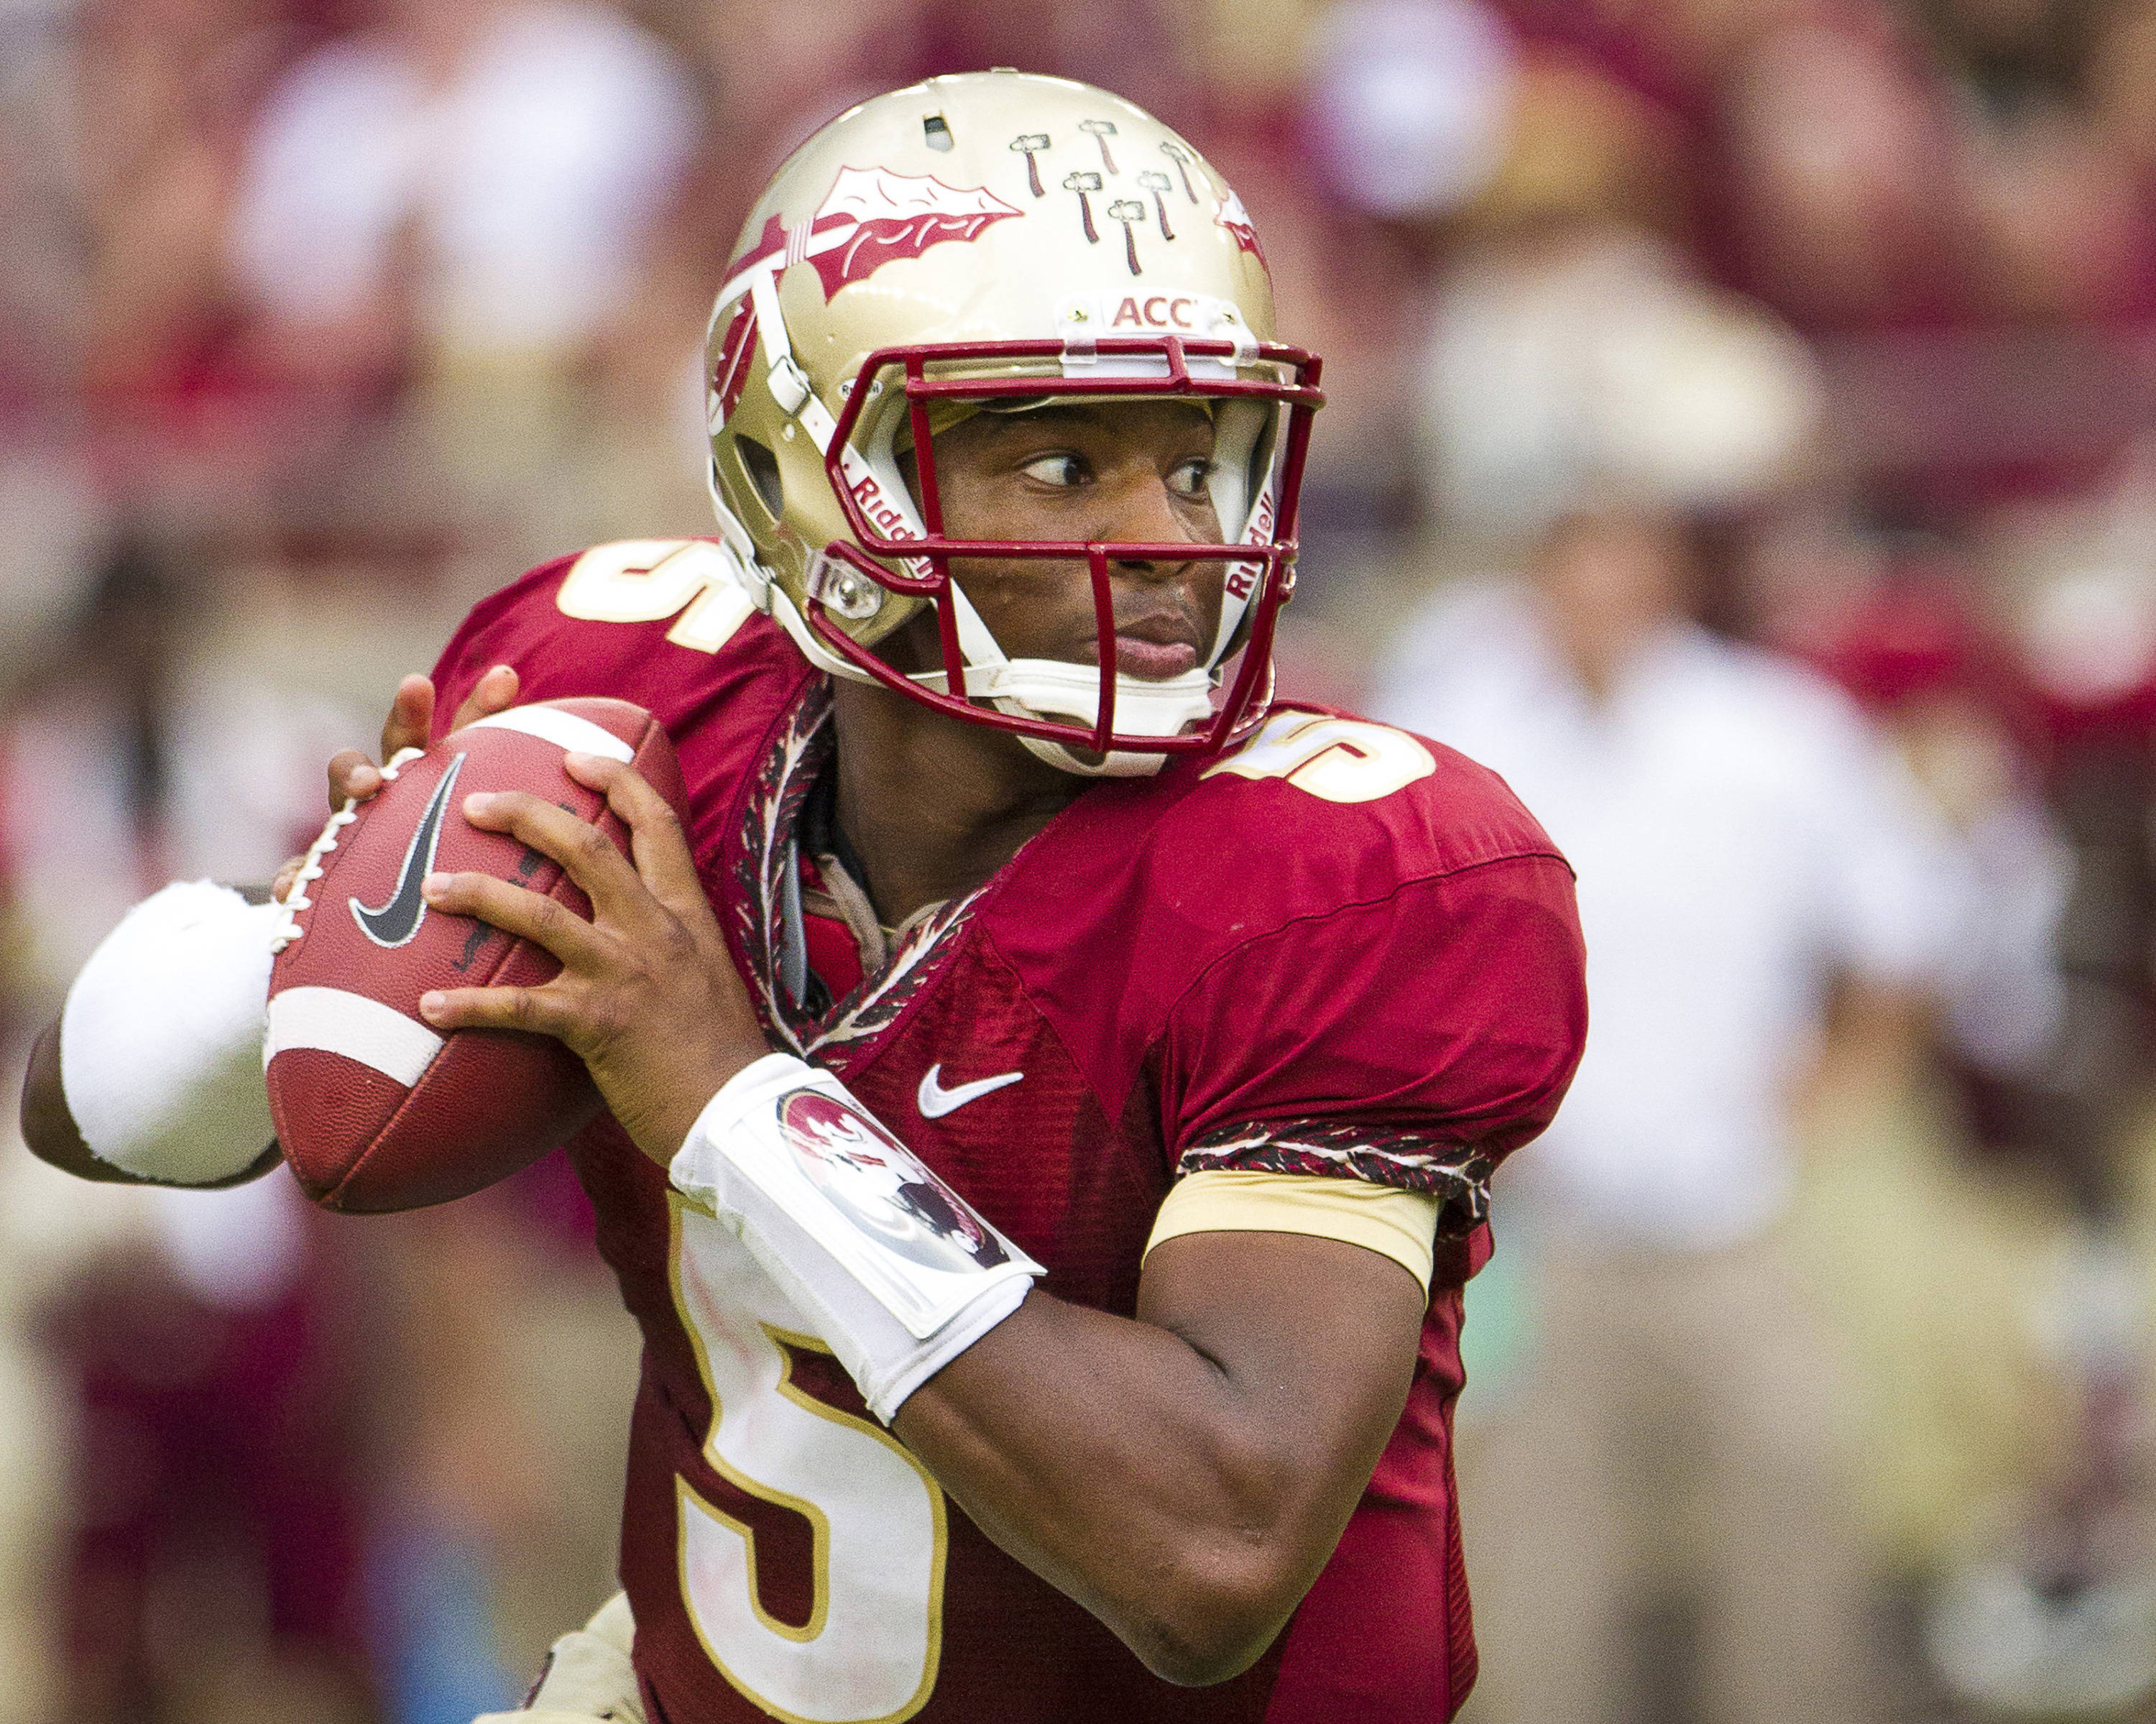 Jameis Winston (5) during FSU's 62-7 win over Nevada on Saturday, Sept 14, 2013 in Tallahassee, Fla.